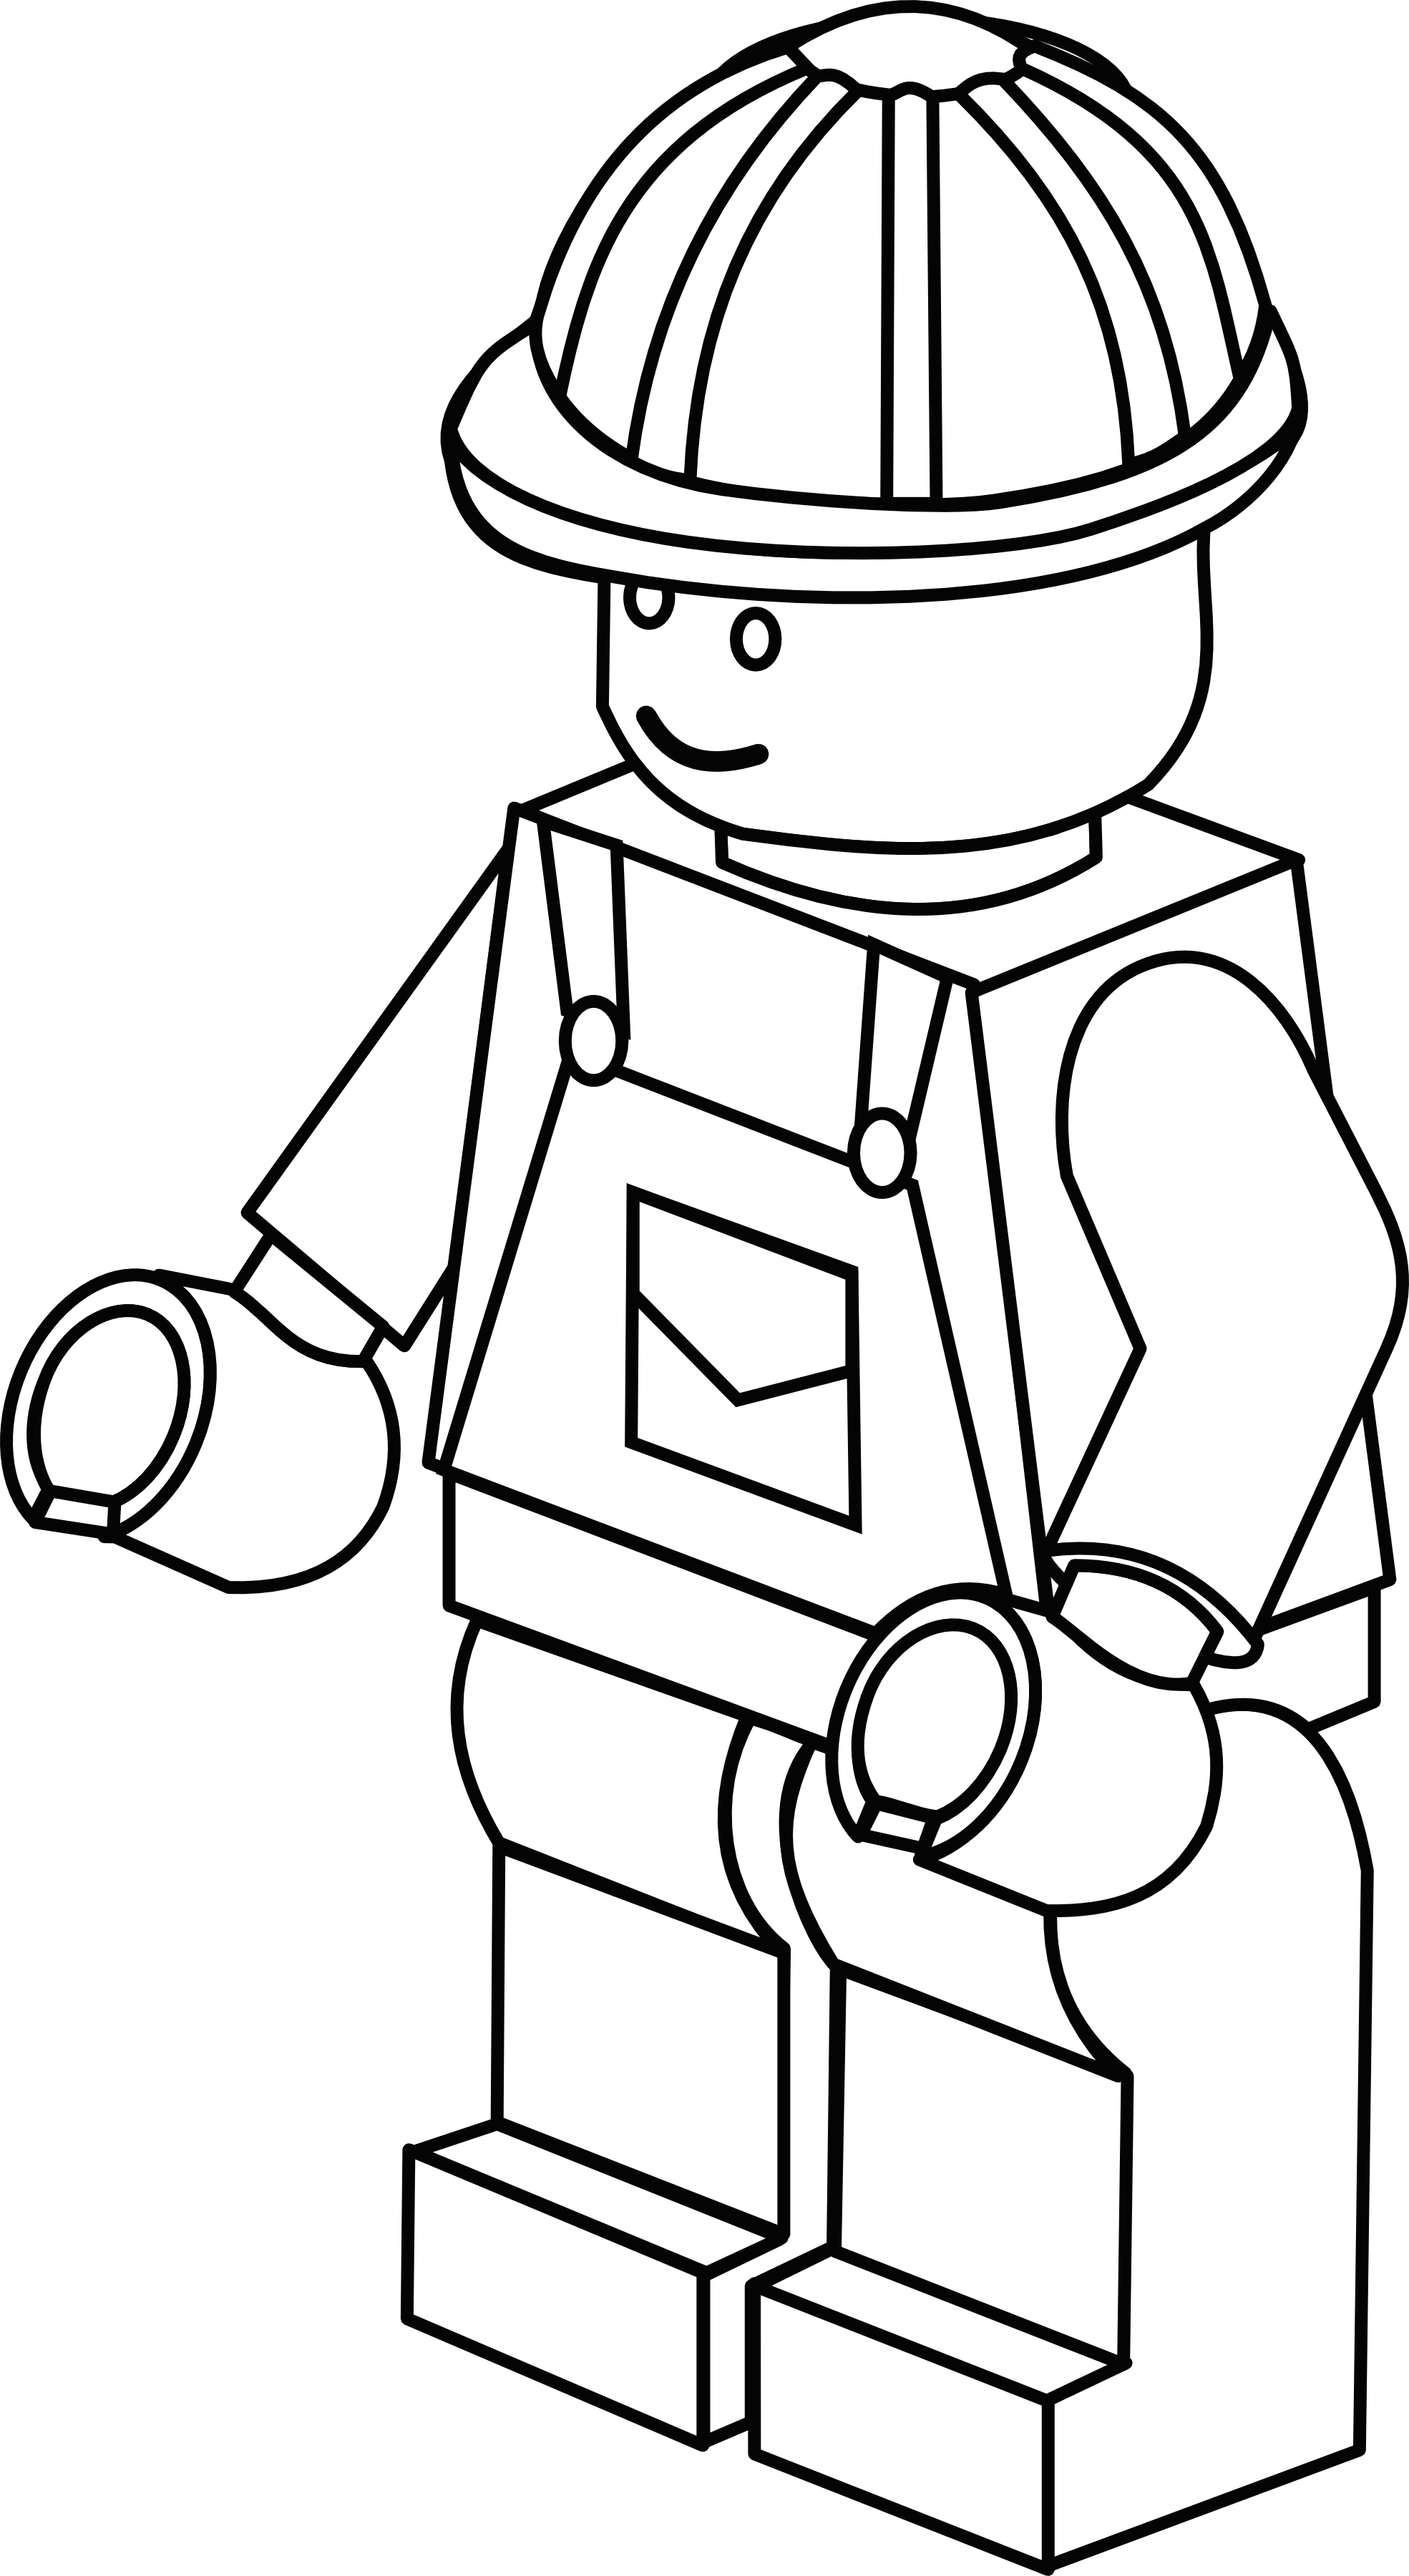 lego pictures to print and colour free coloring pages printable pictures to color kids lego pictures to print and colour